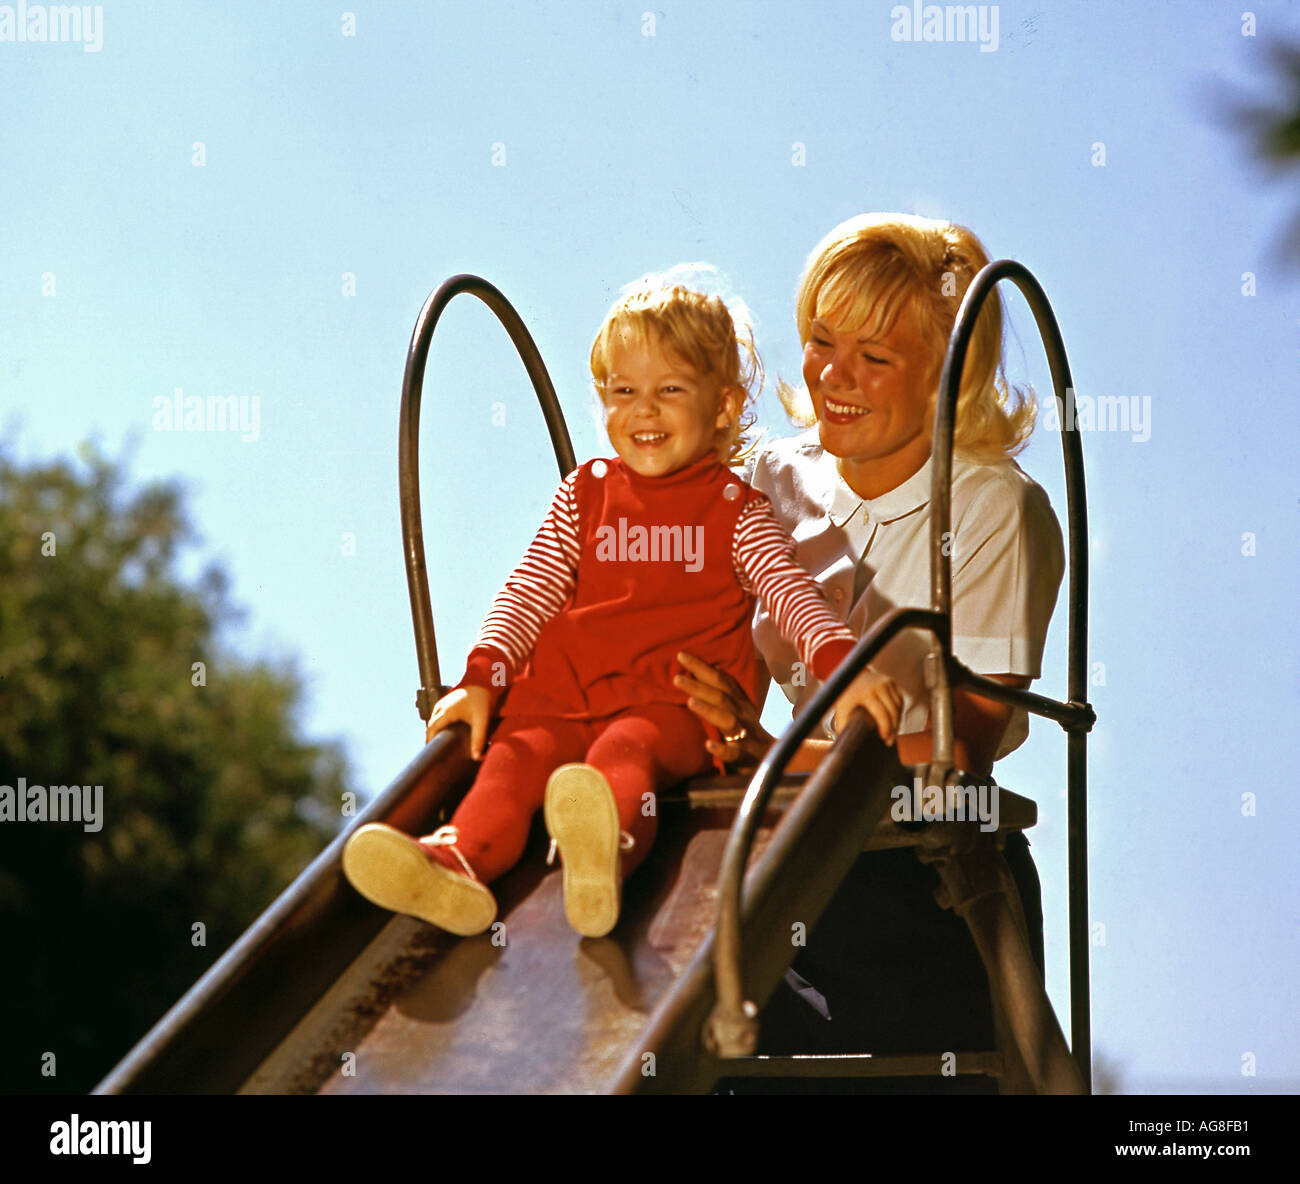 mother and young daughter playing on slide in park - Stock Image